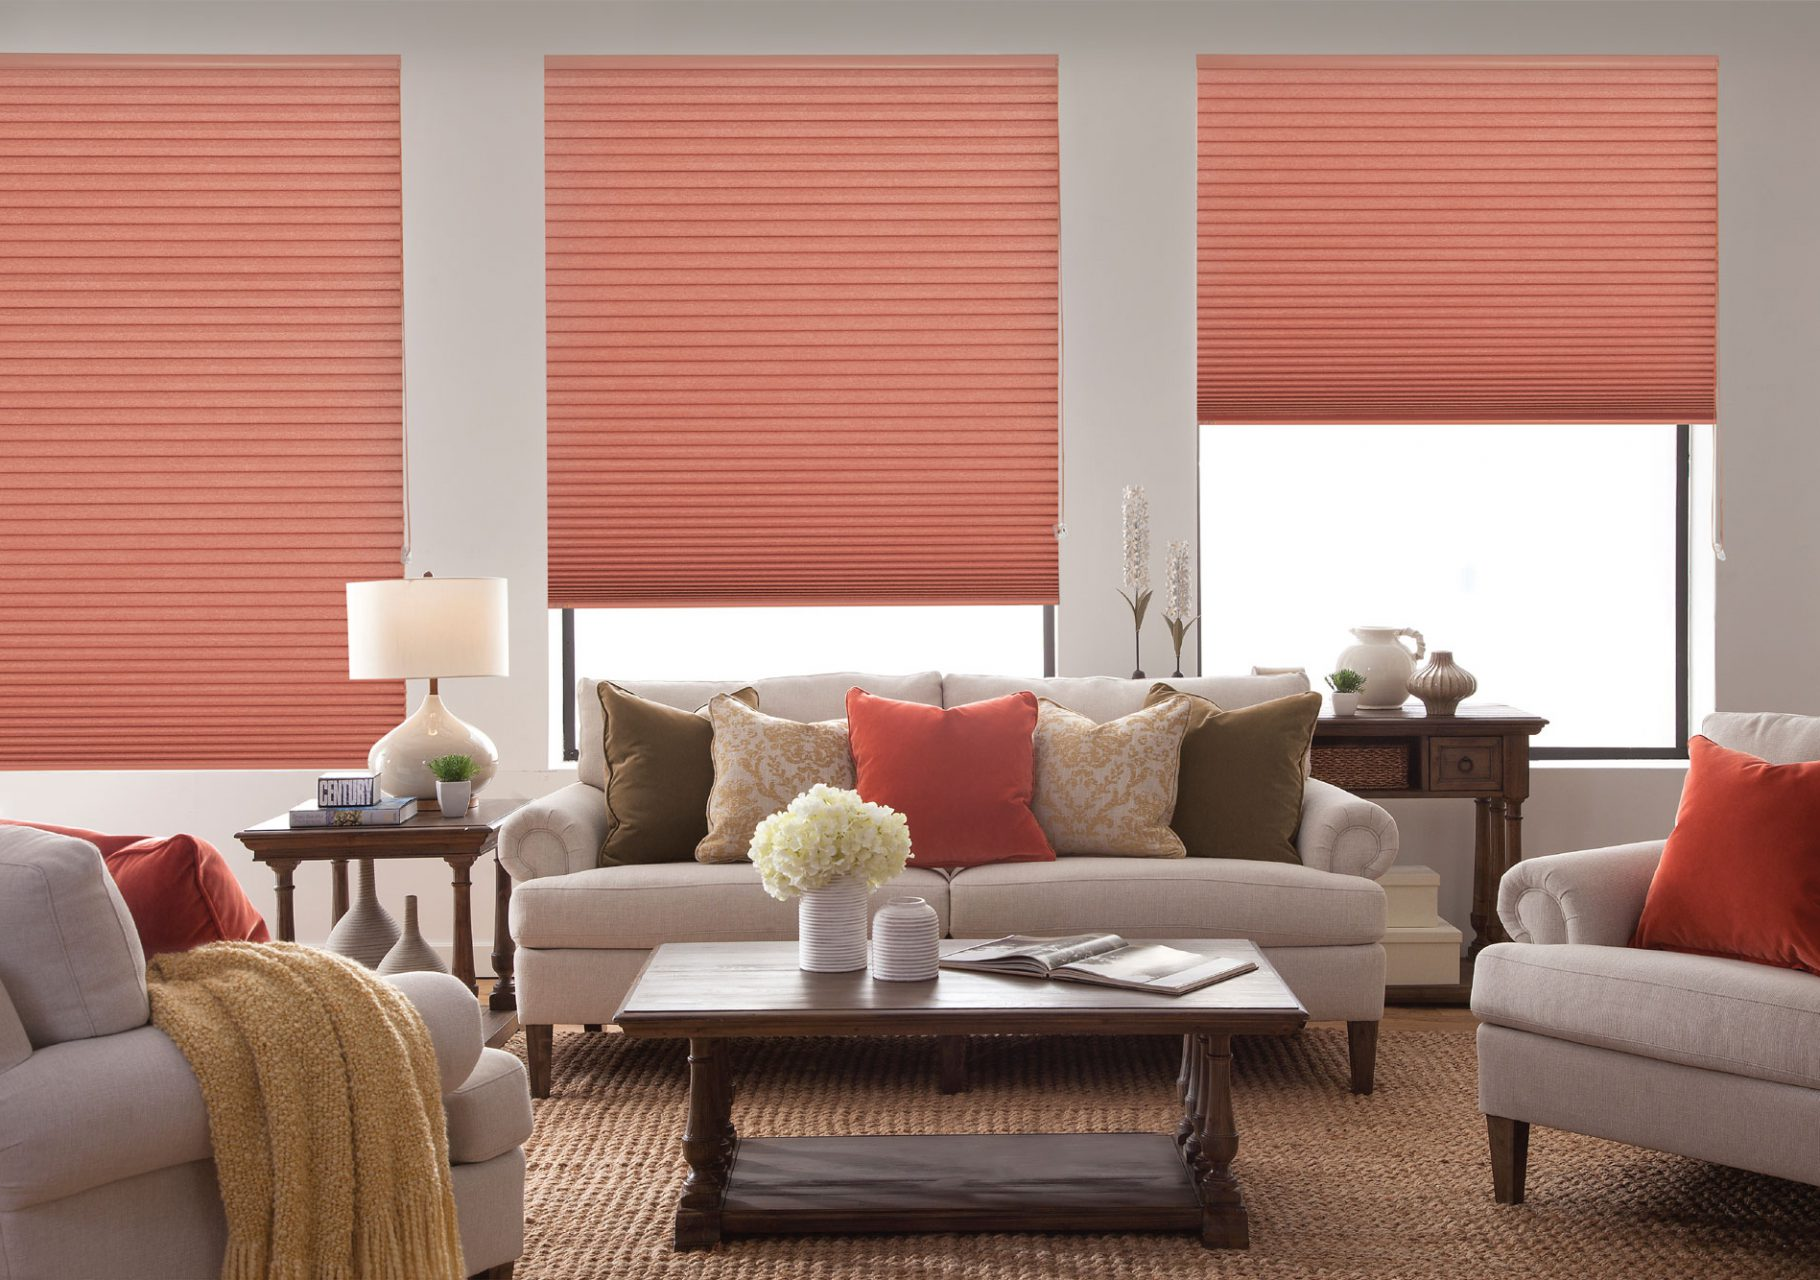 Bottom-up cellular shades perfect for the living room